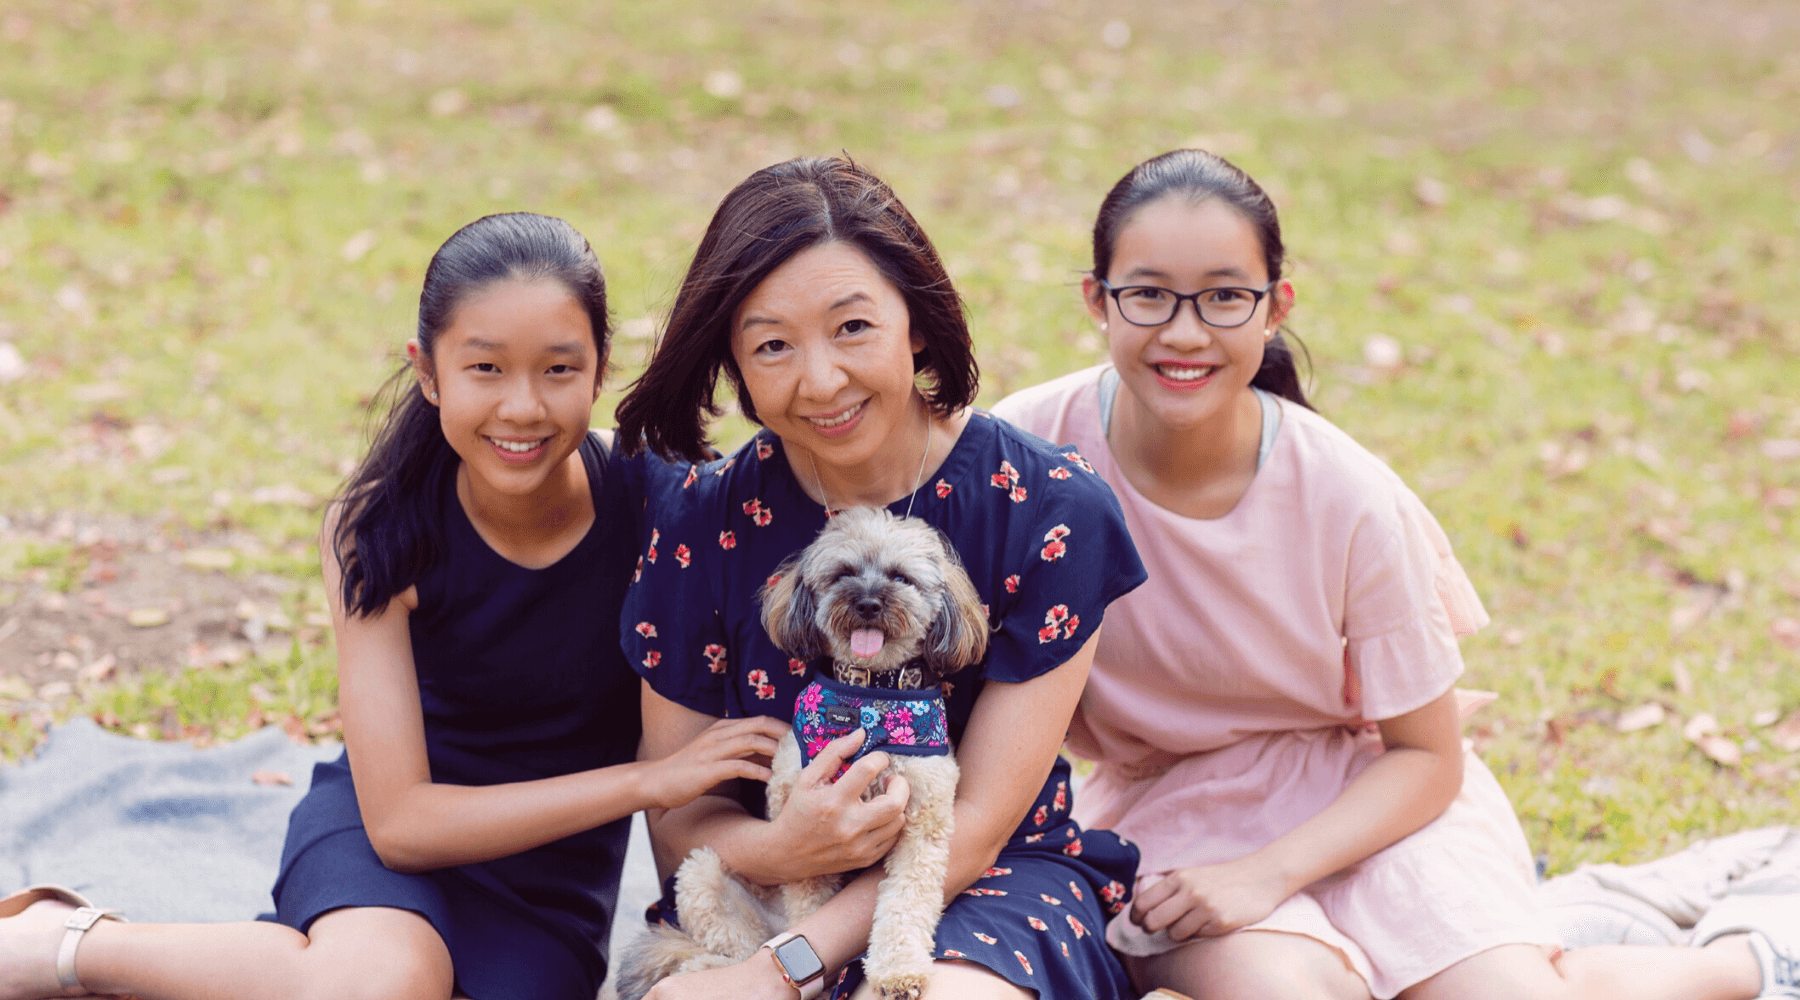 mum and two teen girls with their dog